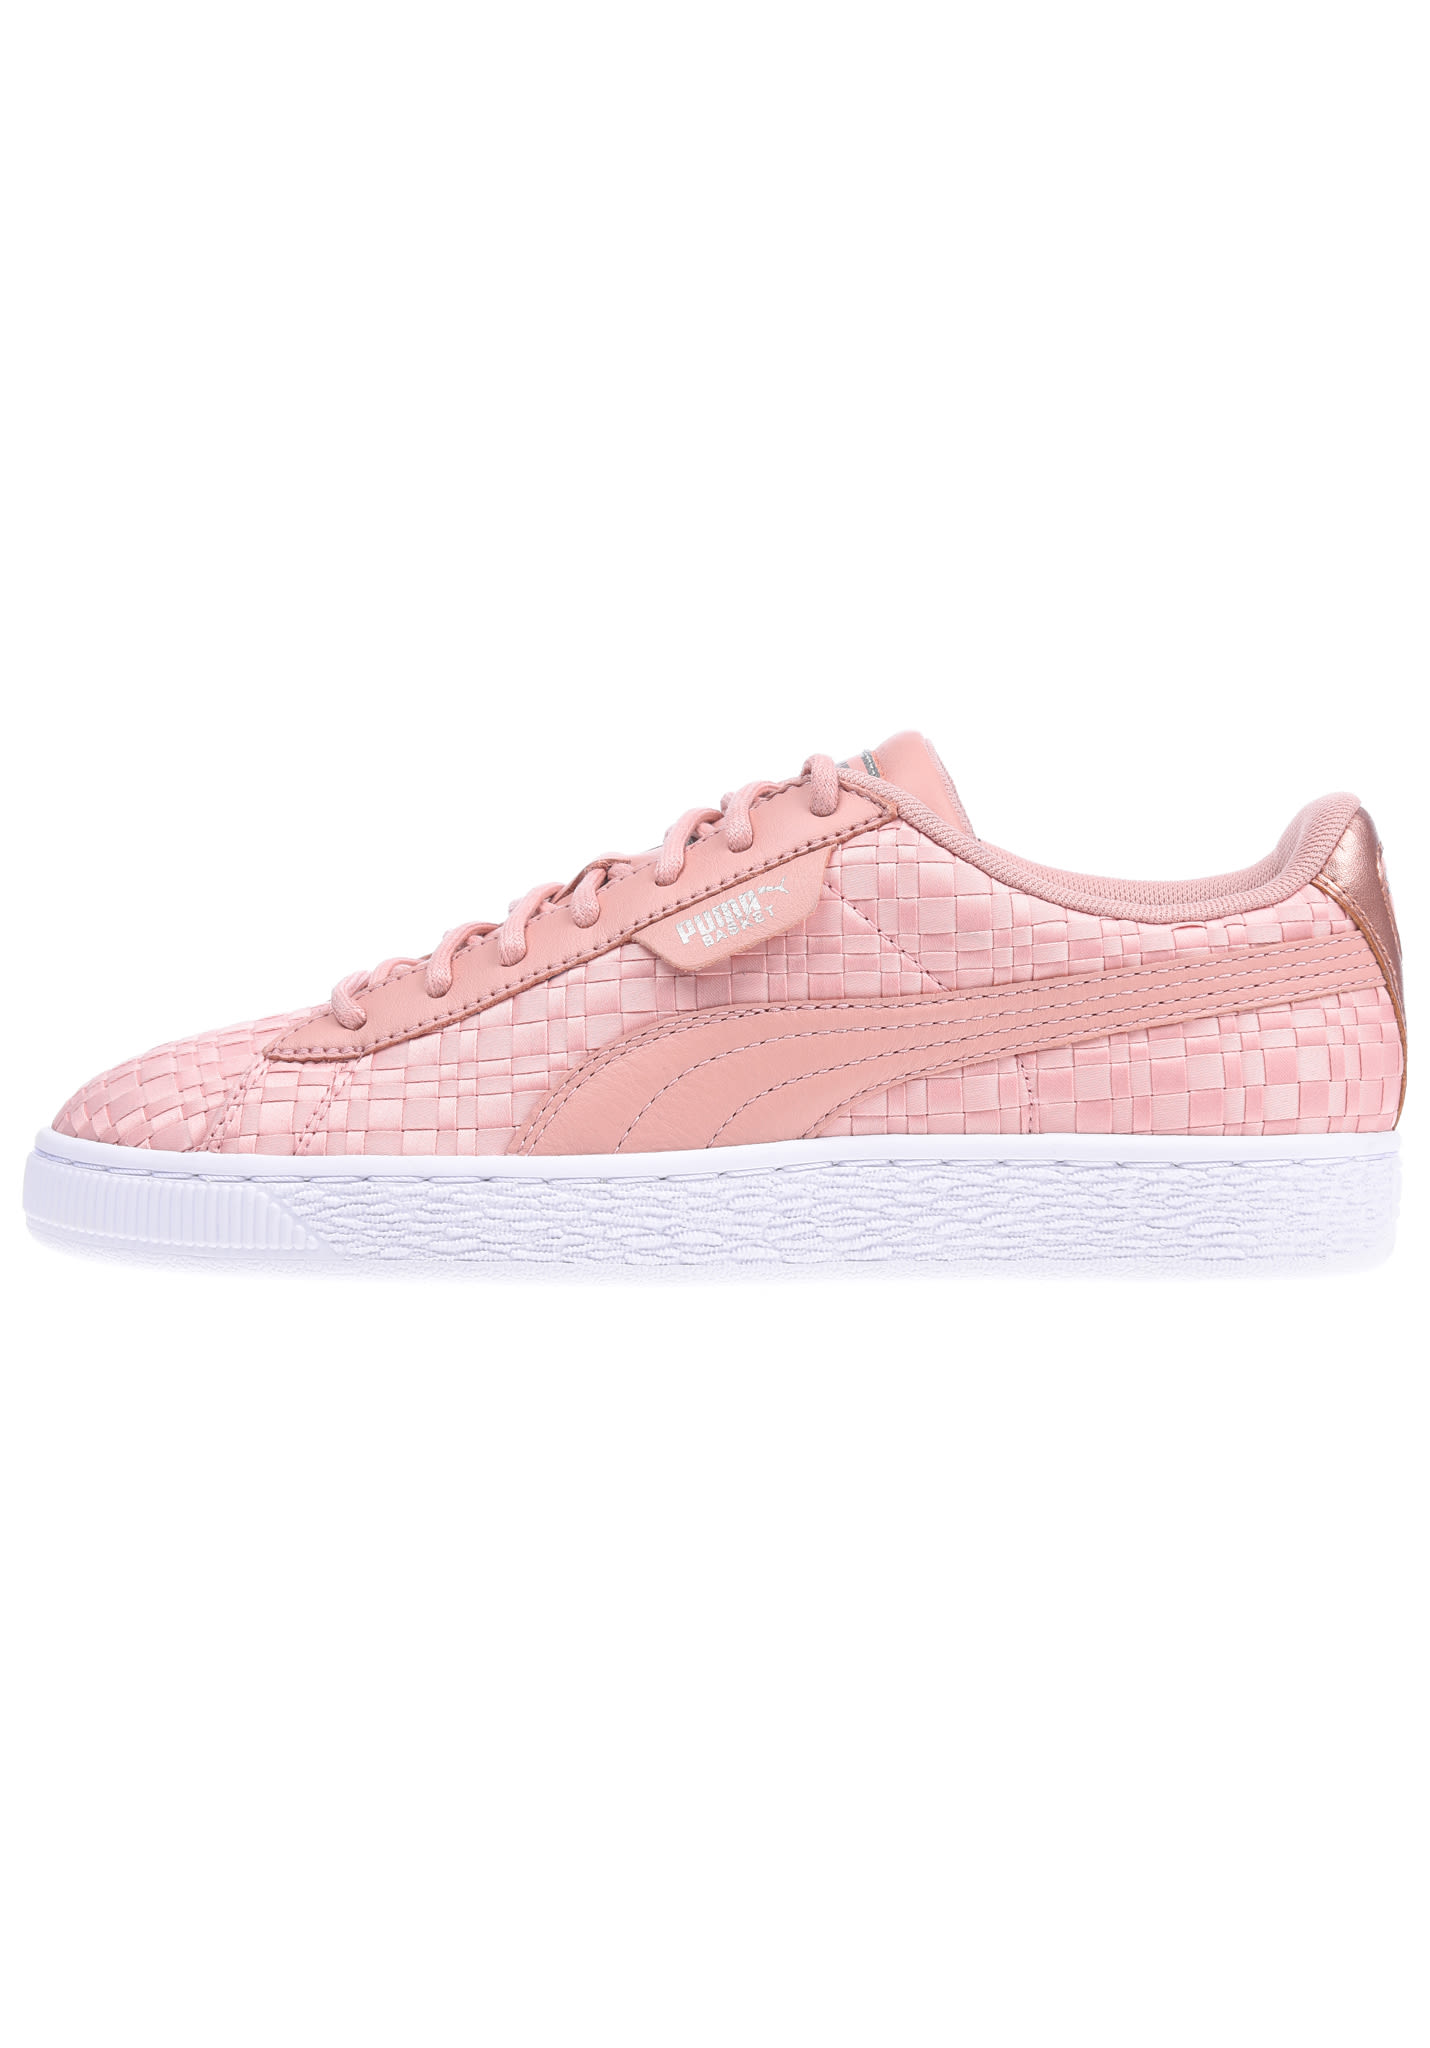 8e353f2190666b Puma Basket Satin En Pointe - Sneakers for Women - Pink